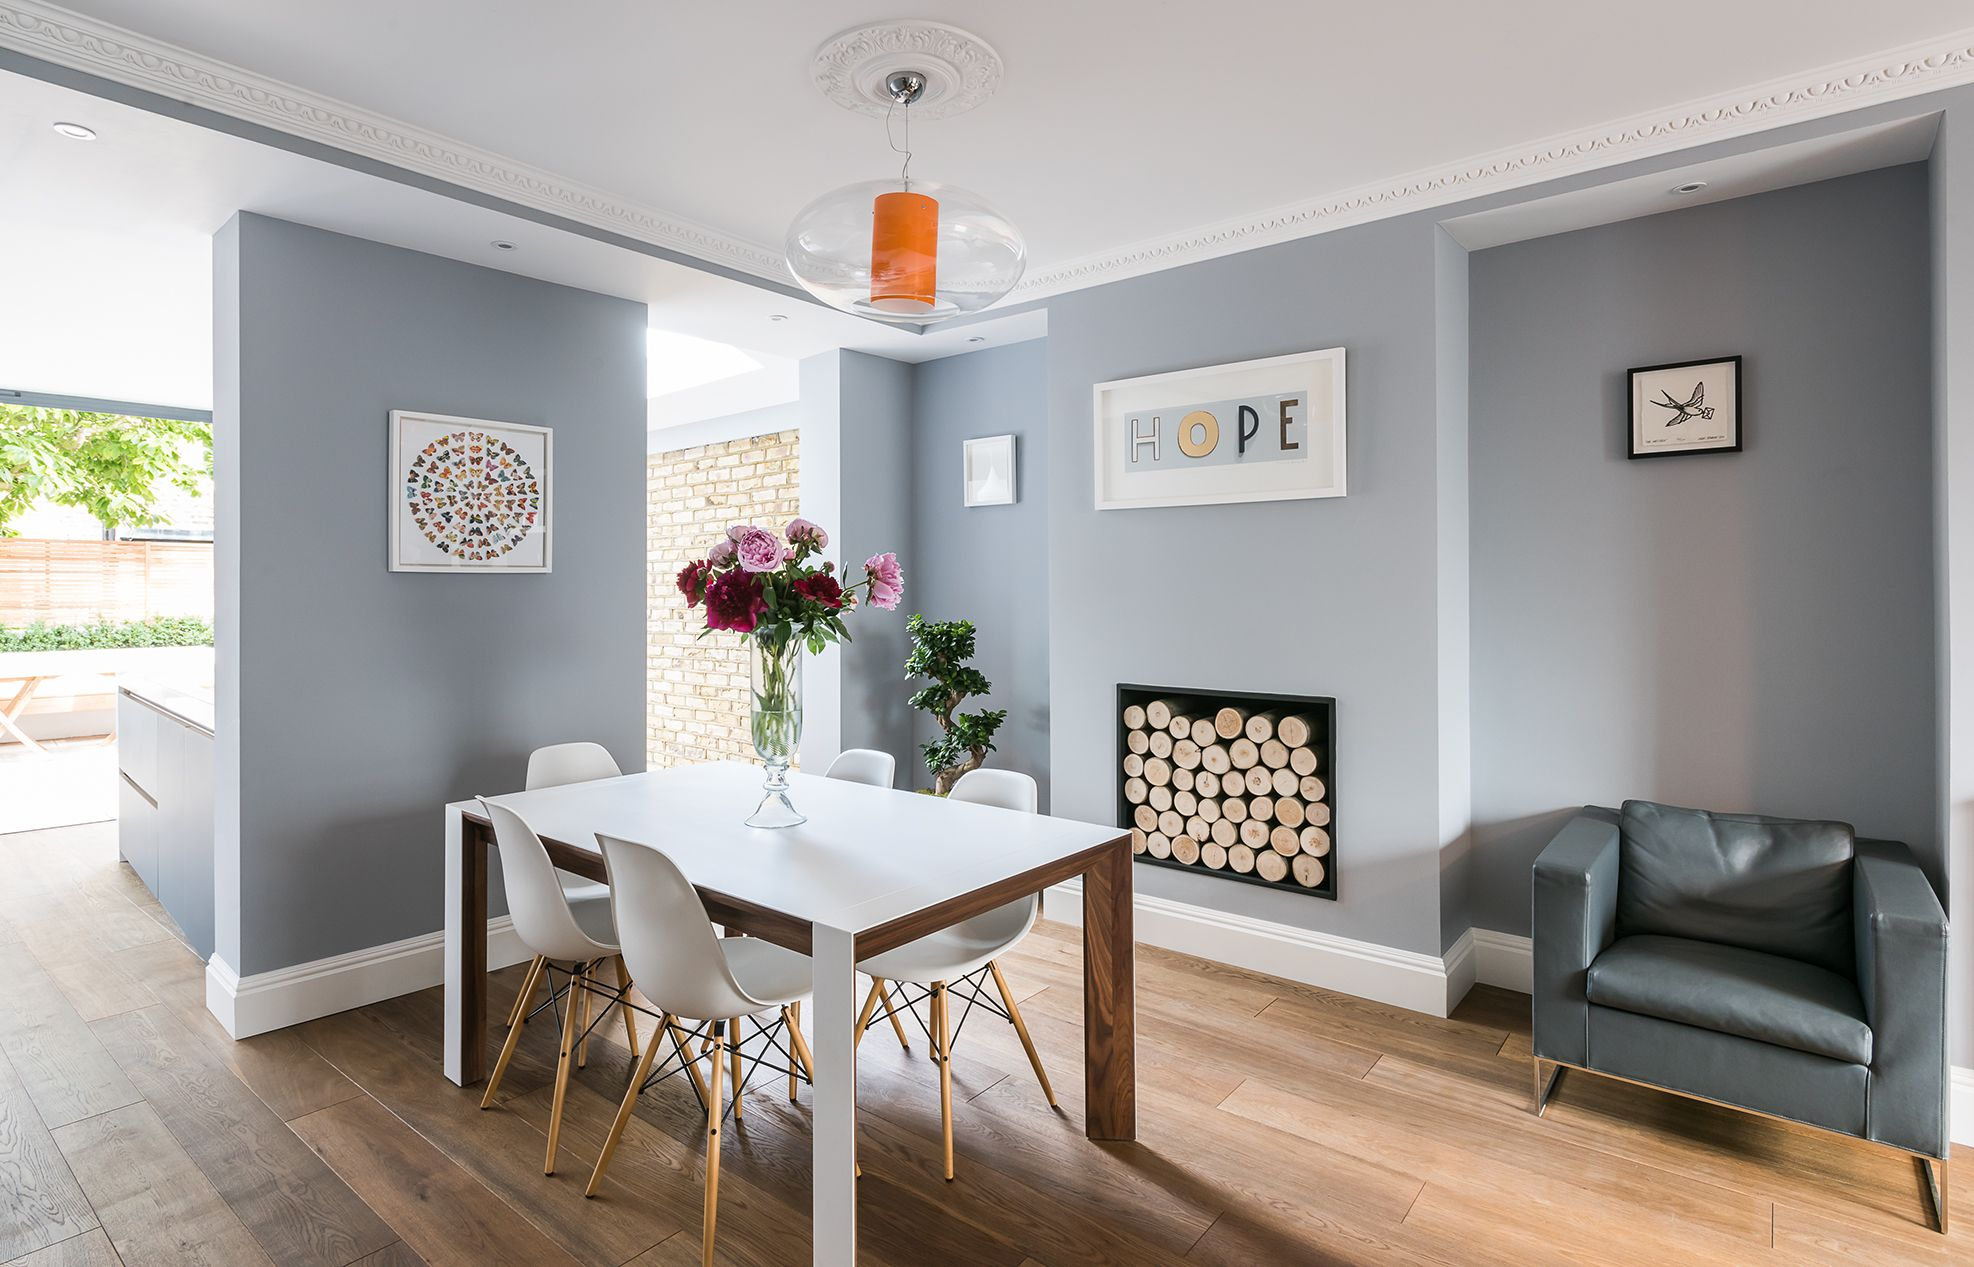 Nautical Themed Family Room Leading To The Open Plan Kitchen It Has A Beautiful Marble Fireplace And Traditional Flooring Which Helps Warm Up